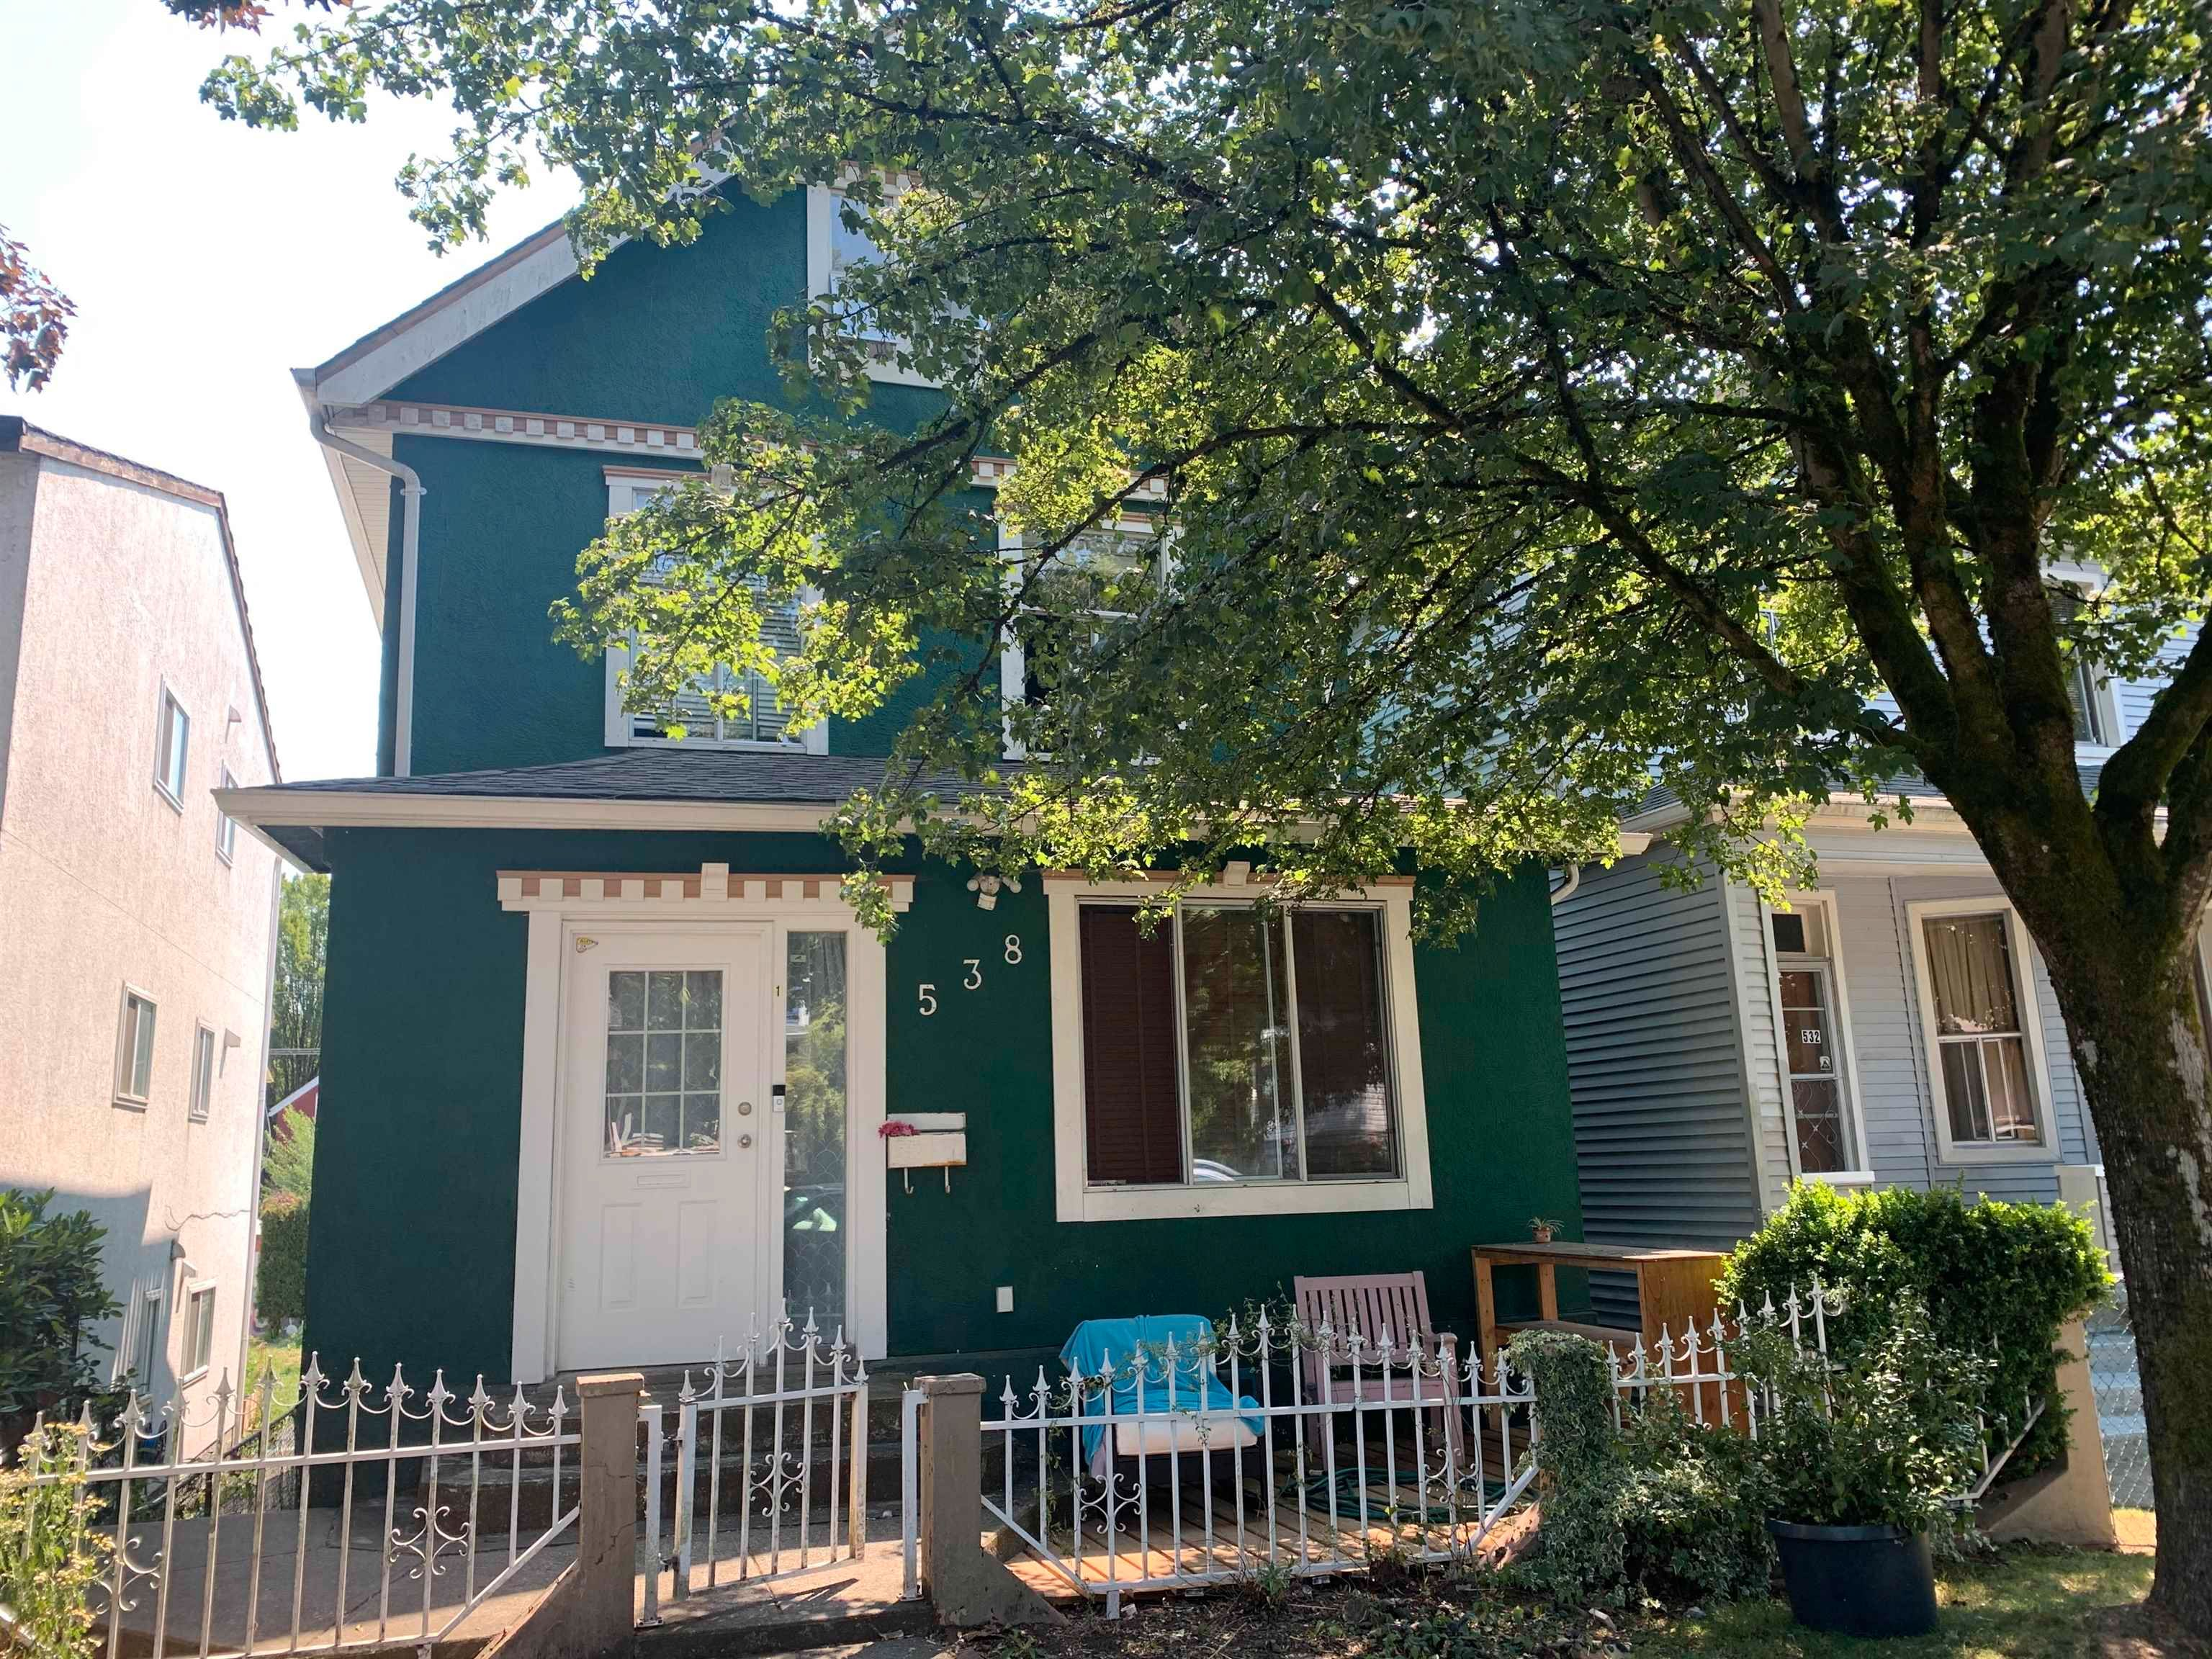 Main Photo: 538 UNION Street in Vancouver: Strathcona Fourplex for sale (Vancouver East)  : MLS®# R2612807